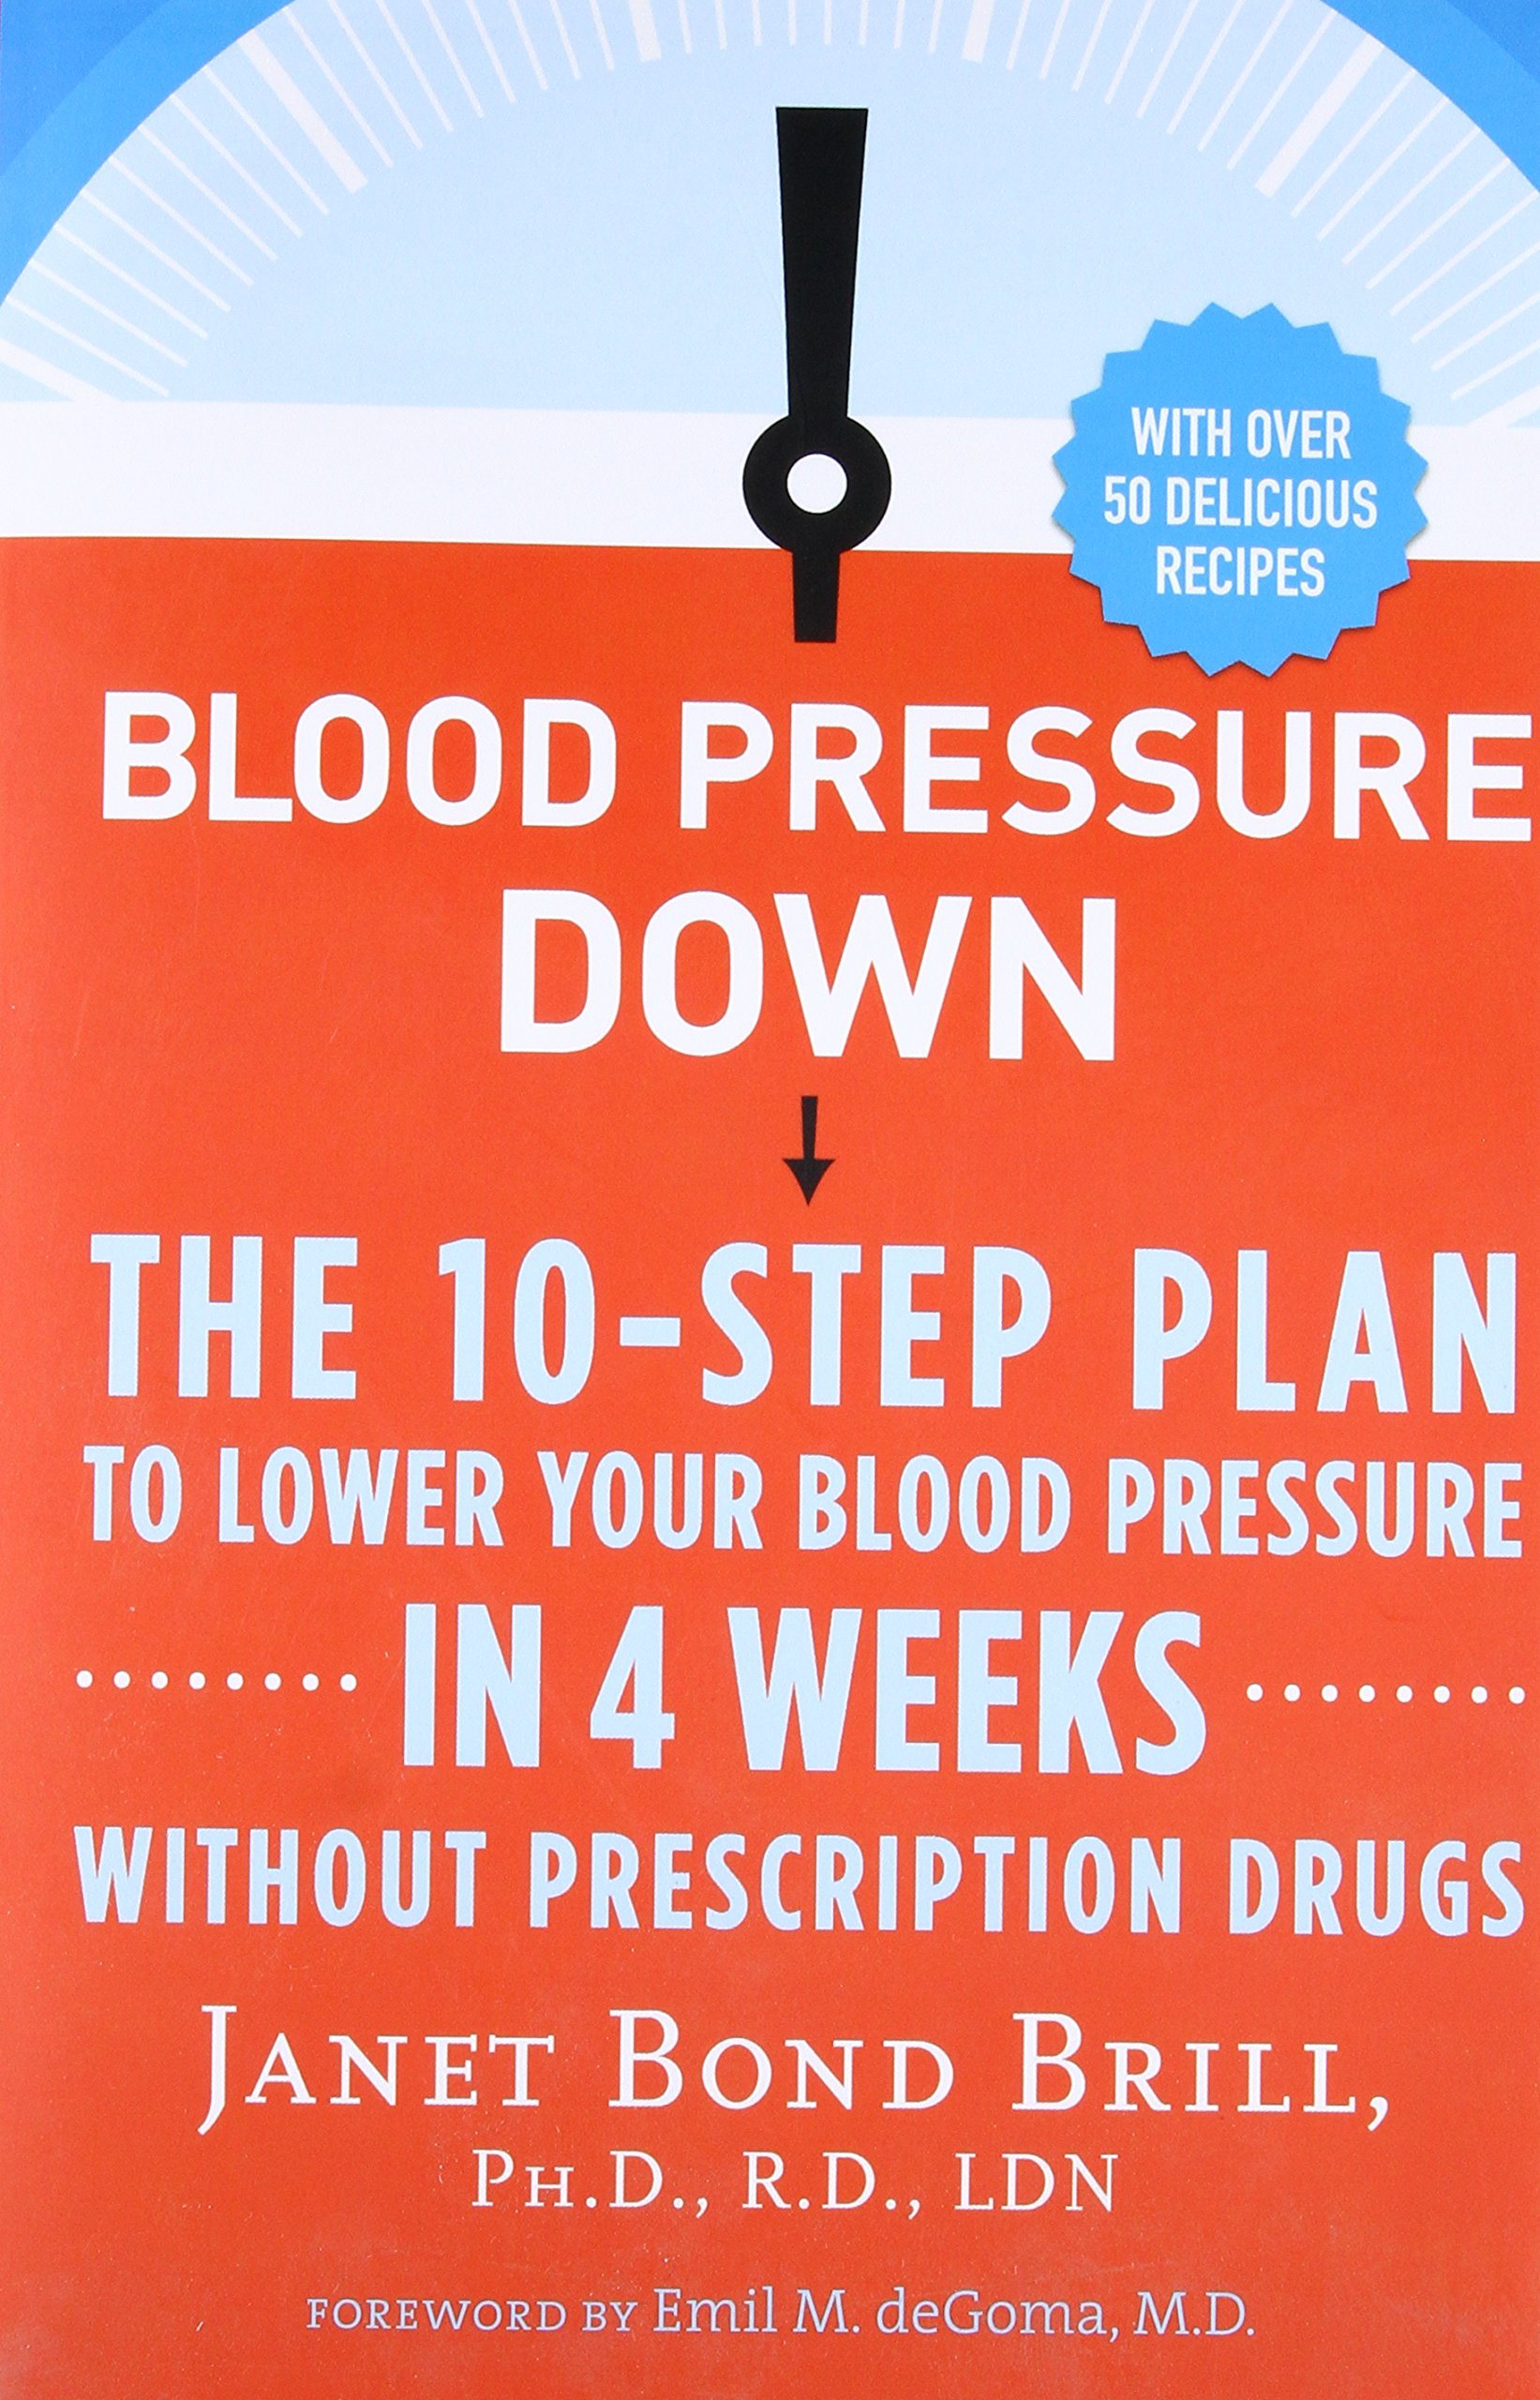 Blood pressure down the 10 step plan to lower your blood pressure blood pressure down the 10 step plan to lower your blood pressure in 4 weeks without prescription drugs janet bond brill phd rd 9780307986351 nvjuhfo Choice Image